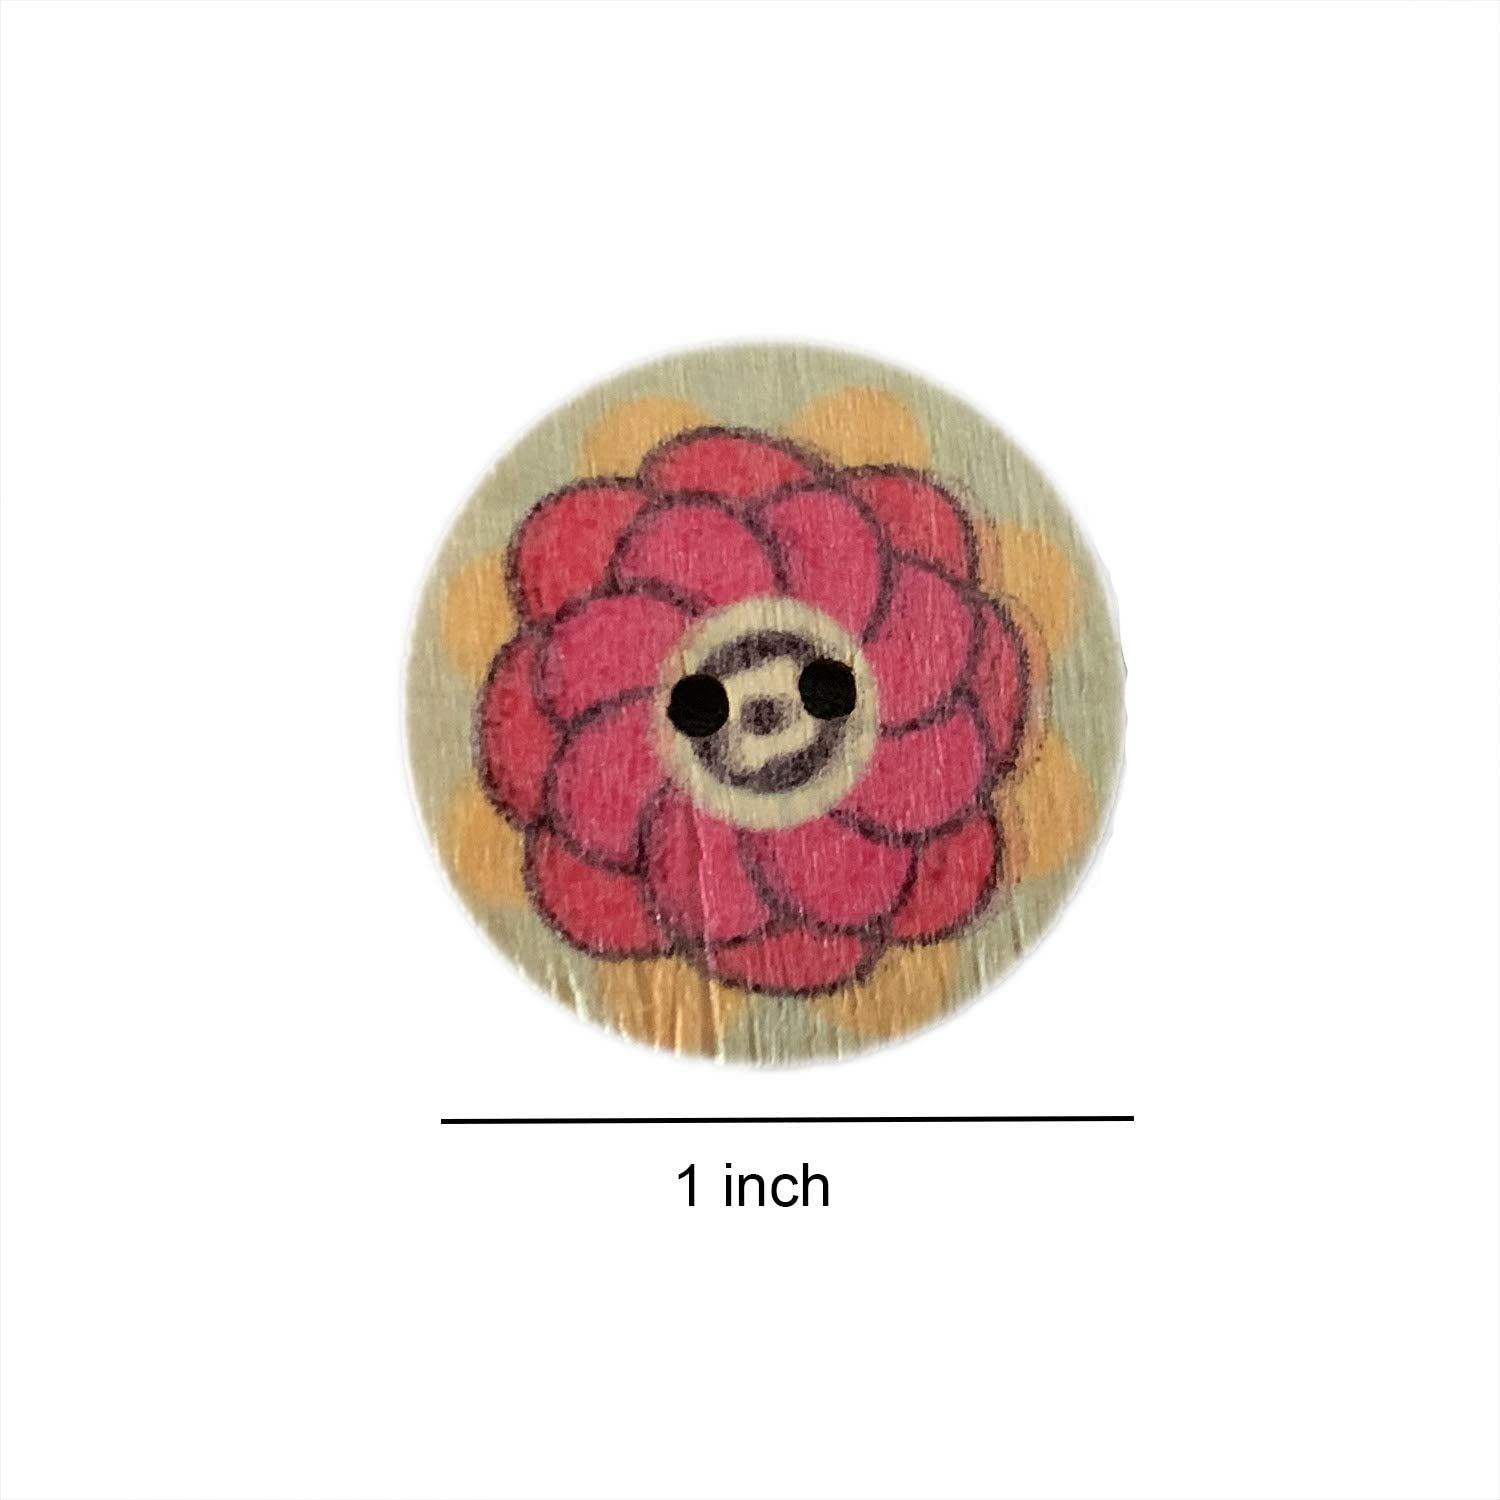 100 PCS 0.6 Inch Wood Sweing Buttons Vintage Wood Buttons with 2 Holes for DIY Sewing Craft Decorative